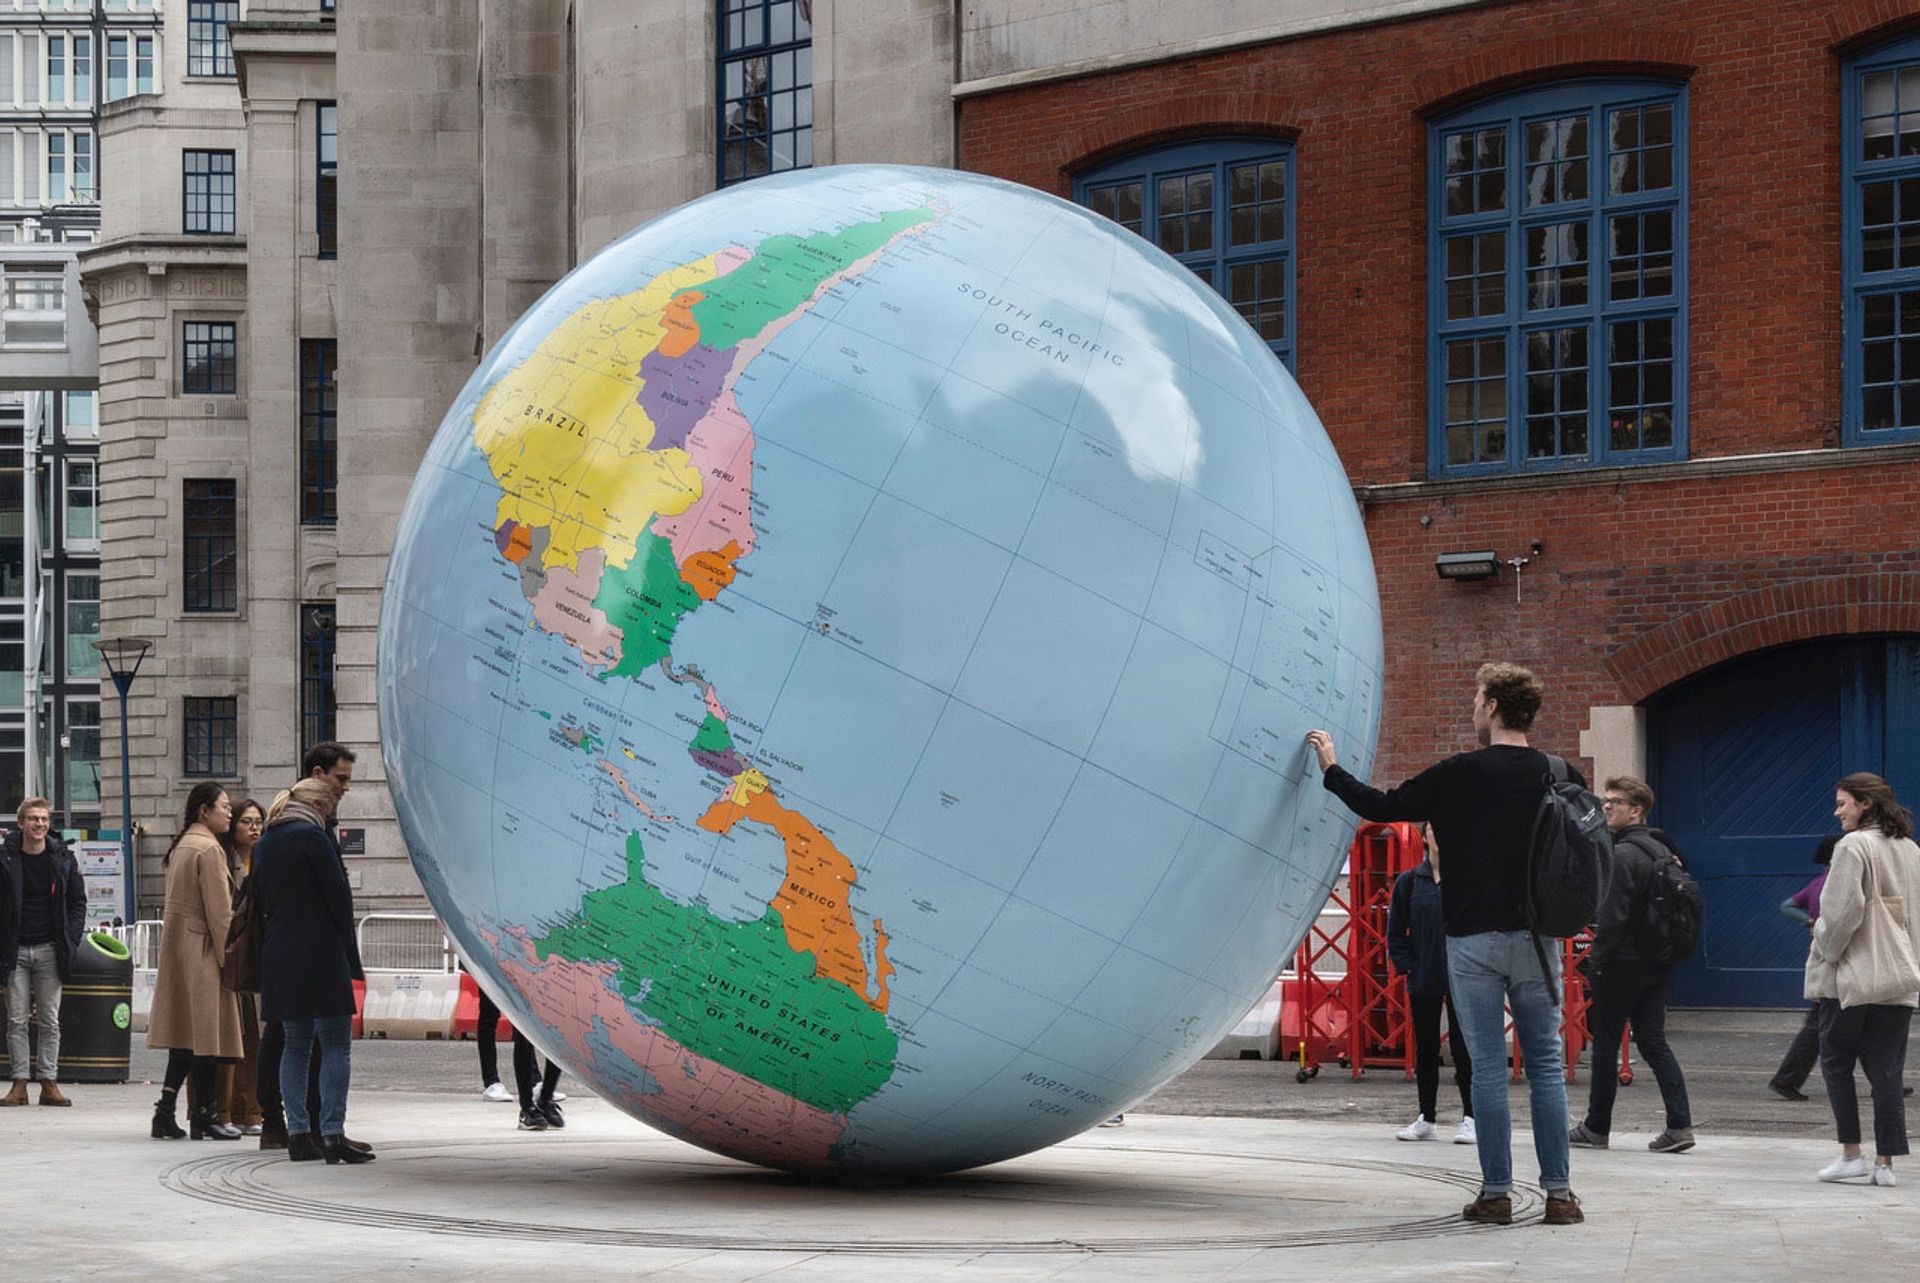 Mark Wallinger's The World Turned Upside Down was unveiled at the entrance of the London School of Economics on 26 March © Damian Griffiths